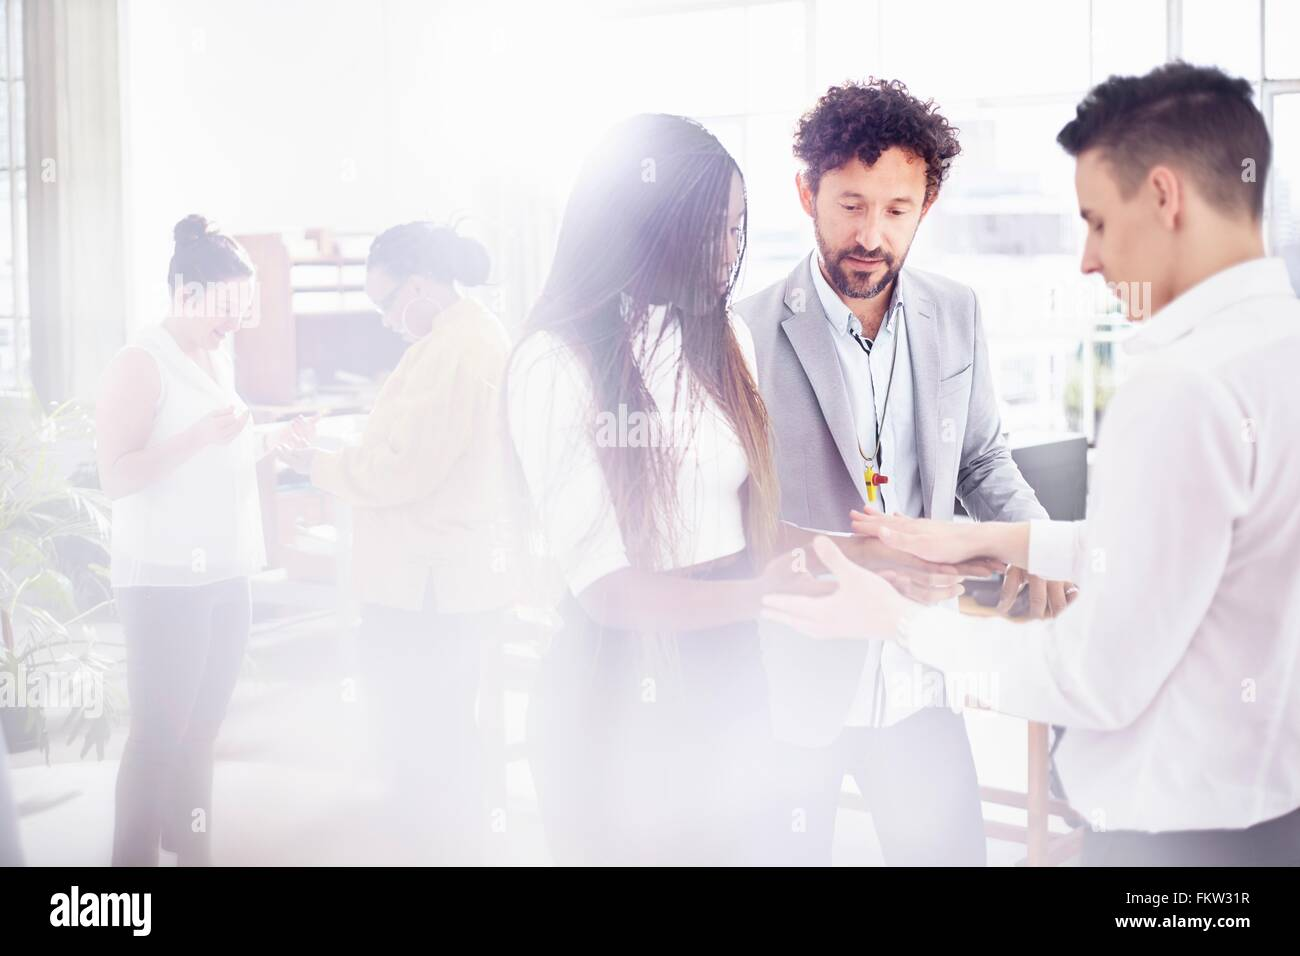 Colleagues in team building task face to face holding hands - Stock Image